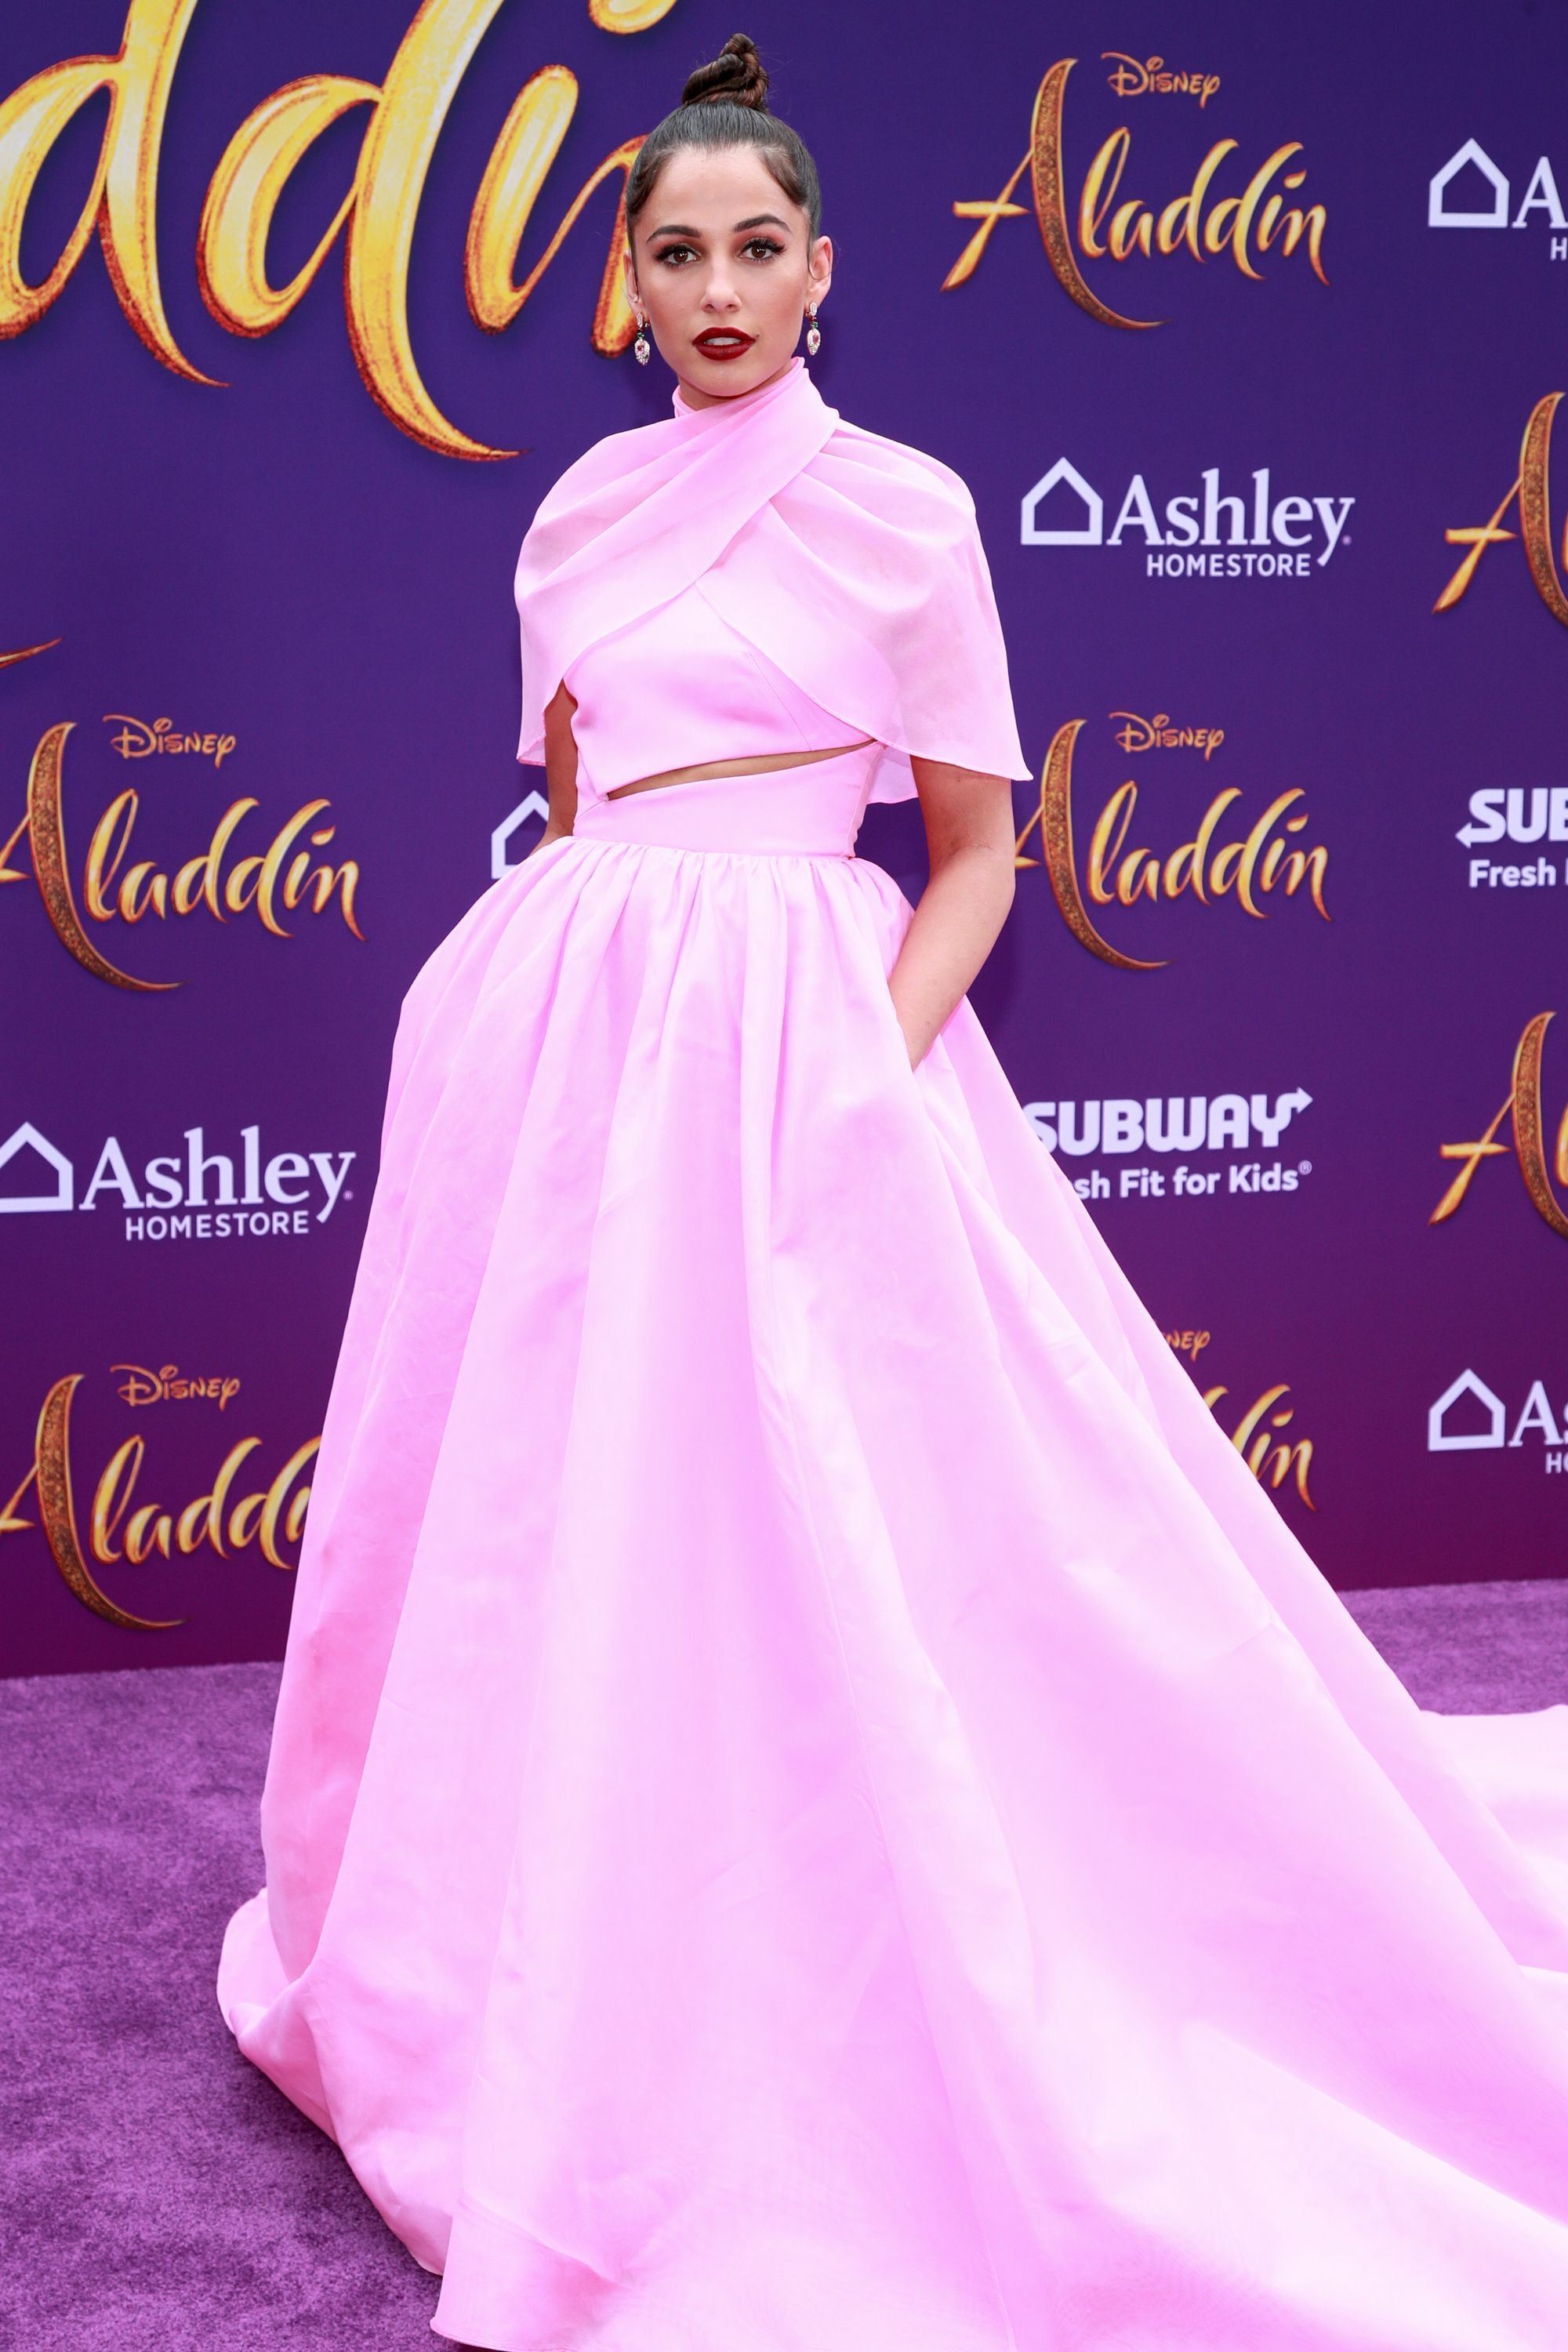 Naomi Scott looks stunning on the red carpet at the 'Aladdin' premiere. The movie stars Will Smith, Mena Massoud and Naomi Scott. It is another Disney Live-Action hit. Photo Credits: Getty Images #actionmovie